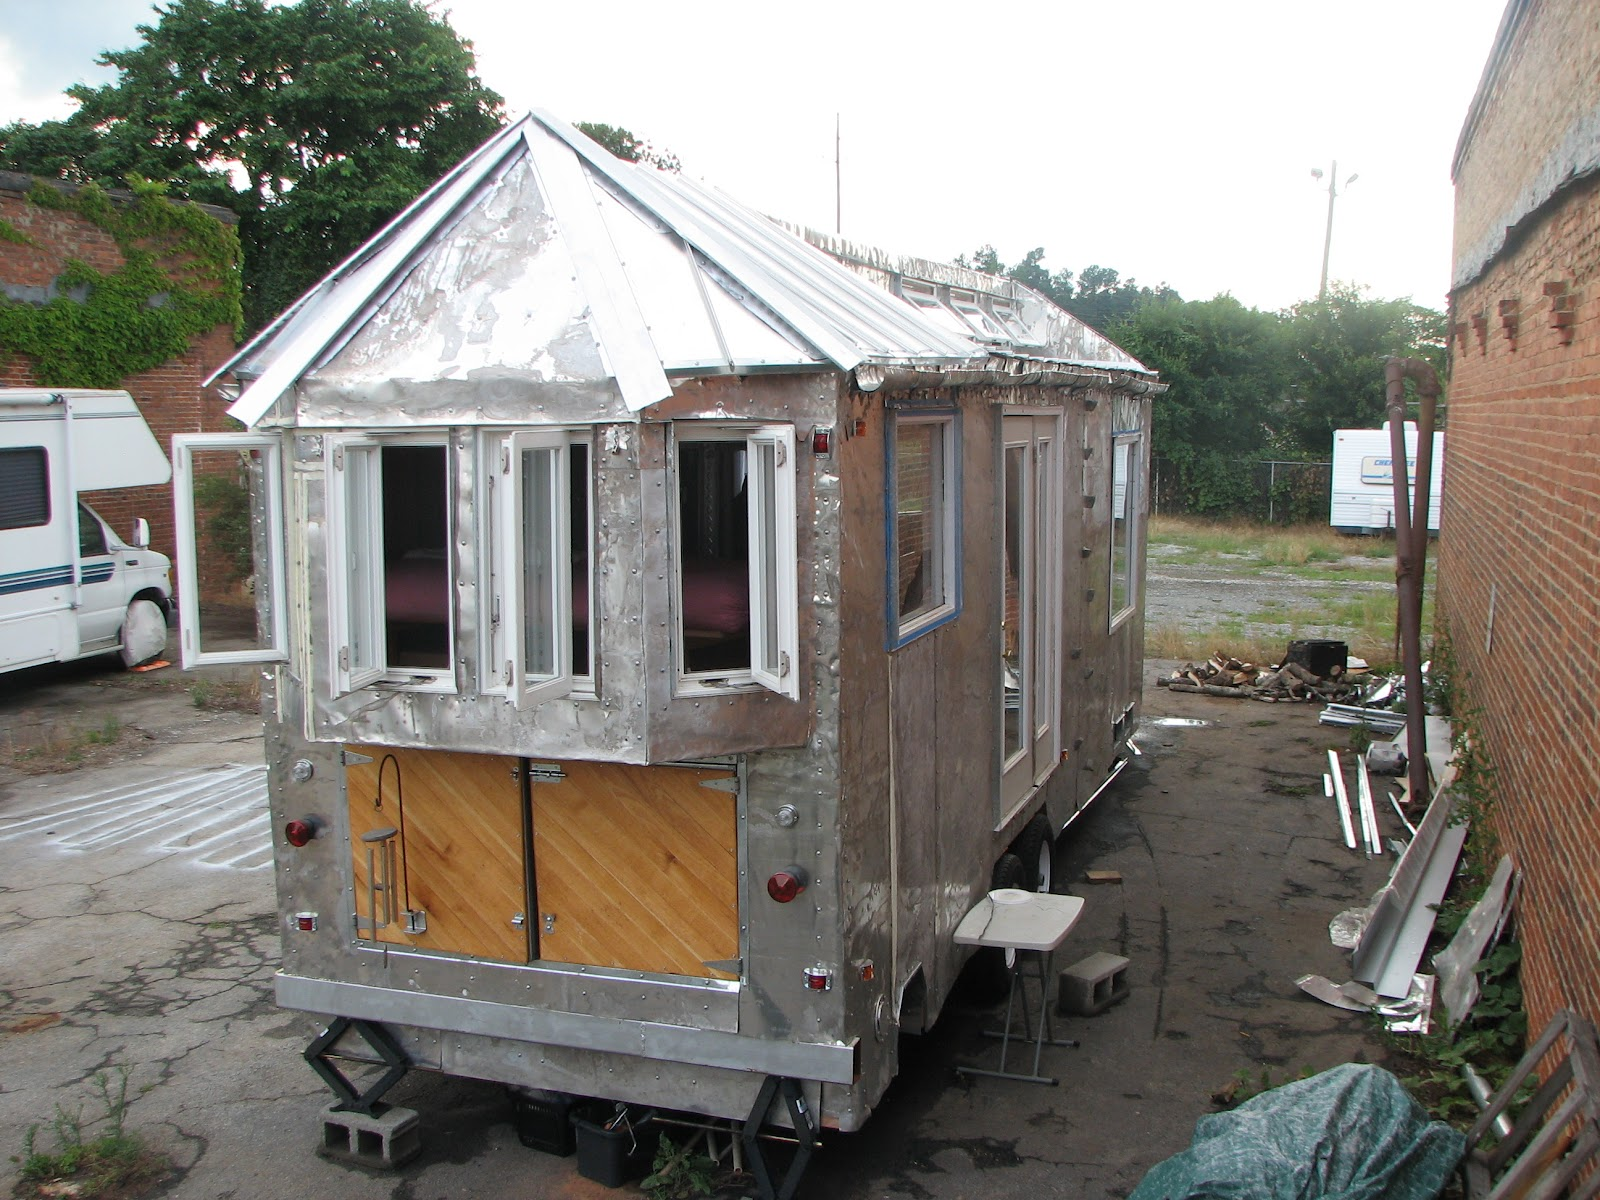 15 Pictures Homes Built On Trailers additionally Craigs List No No moreover Trimming Out Basement also Shipping Container Homes Off Grid Architecture For A Change South Africa also Trimmed Out. on building a home made solar powered travel trailer from the